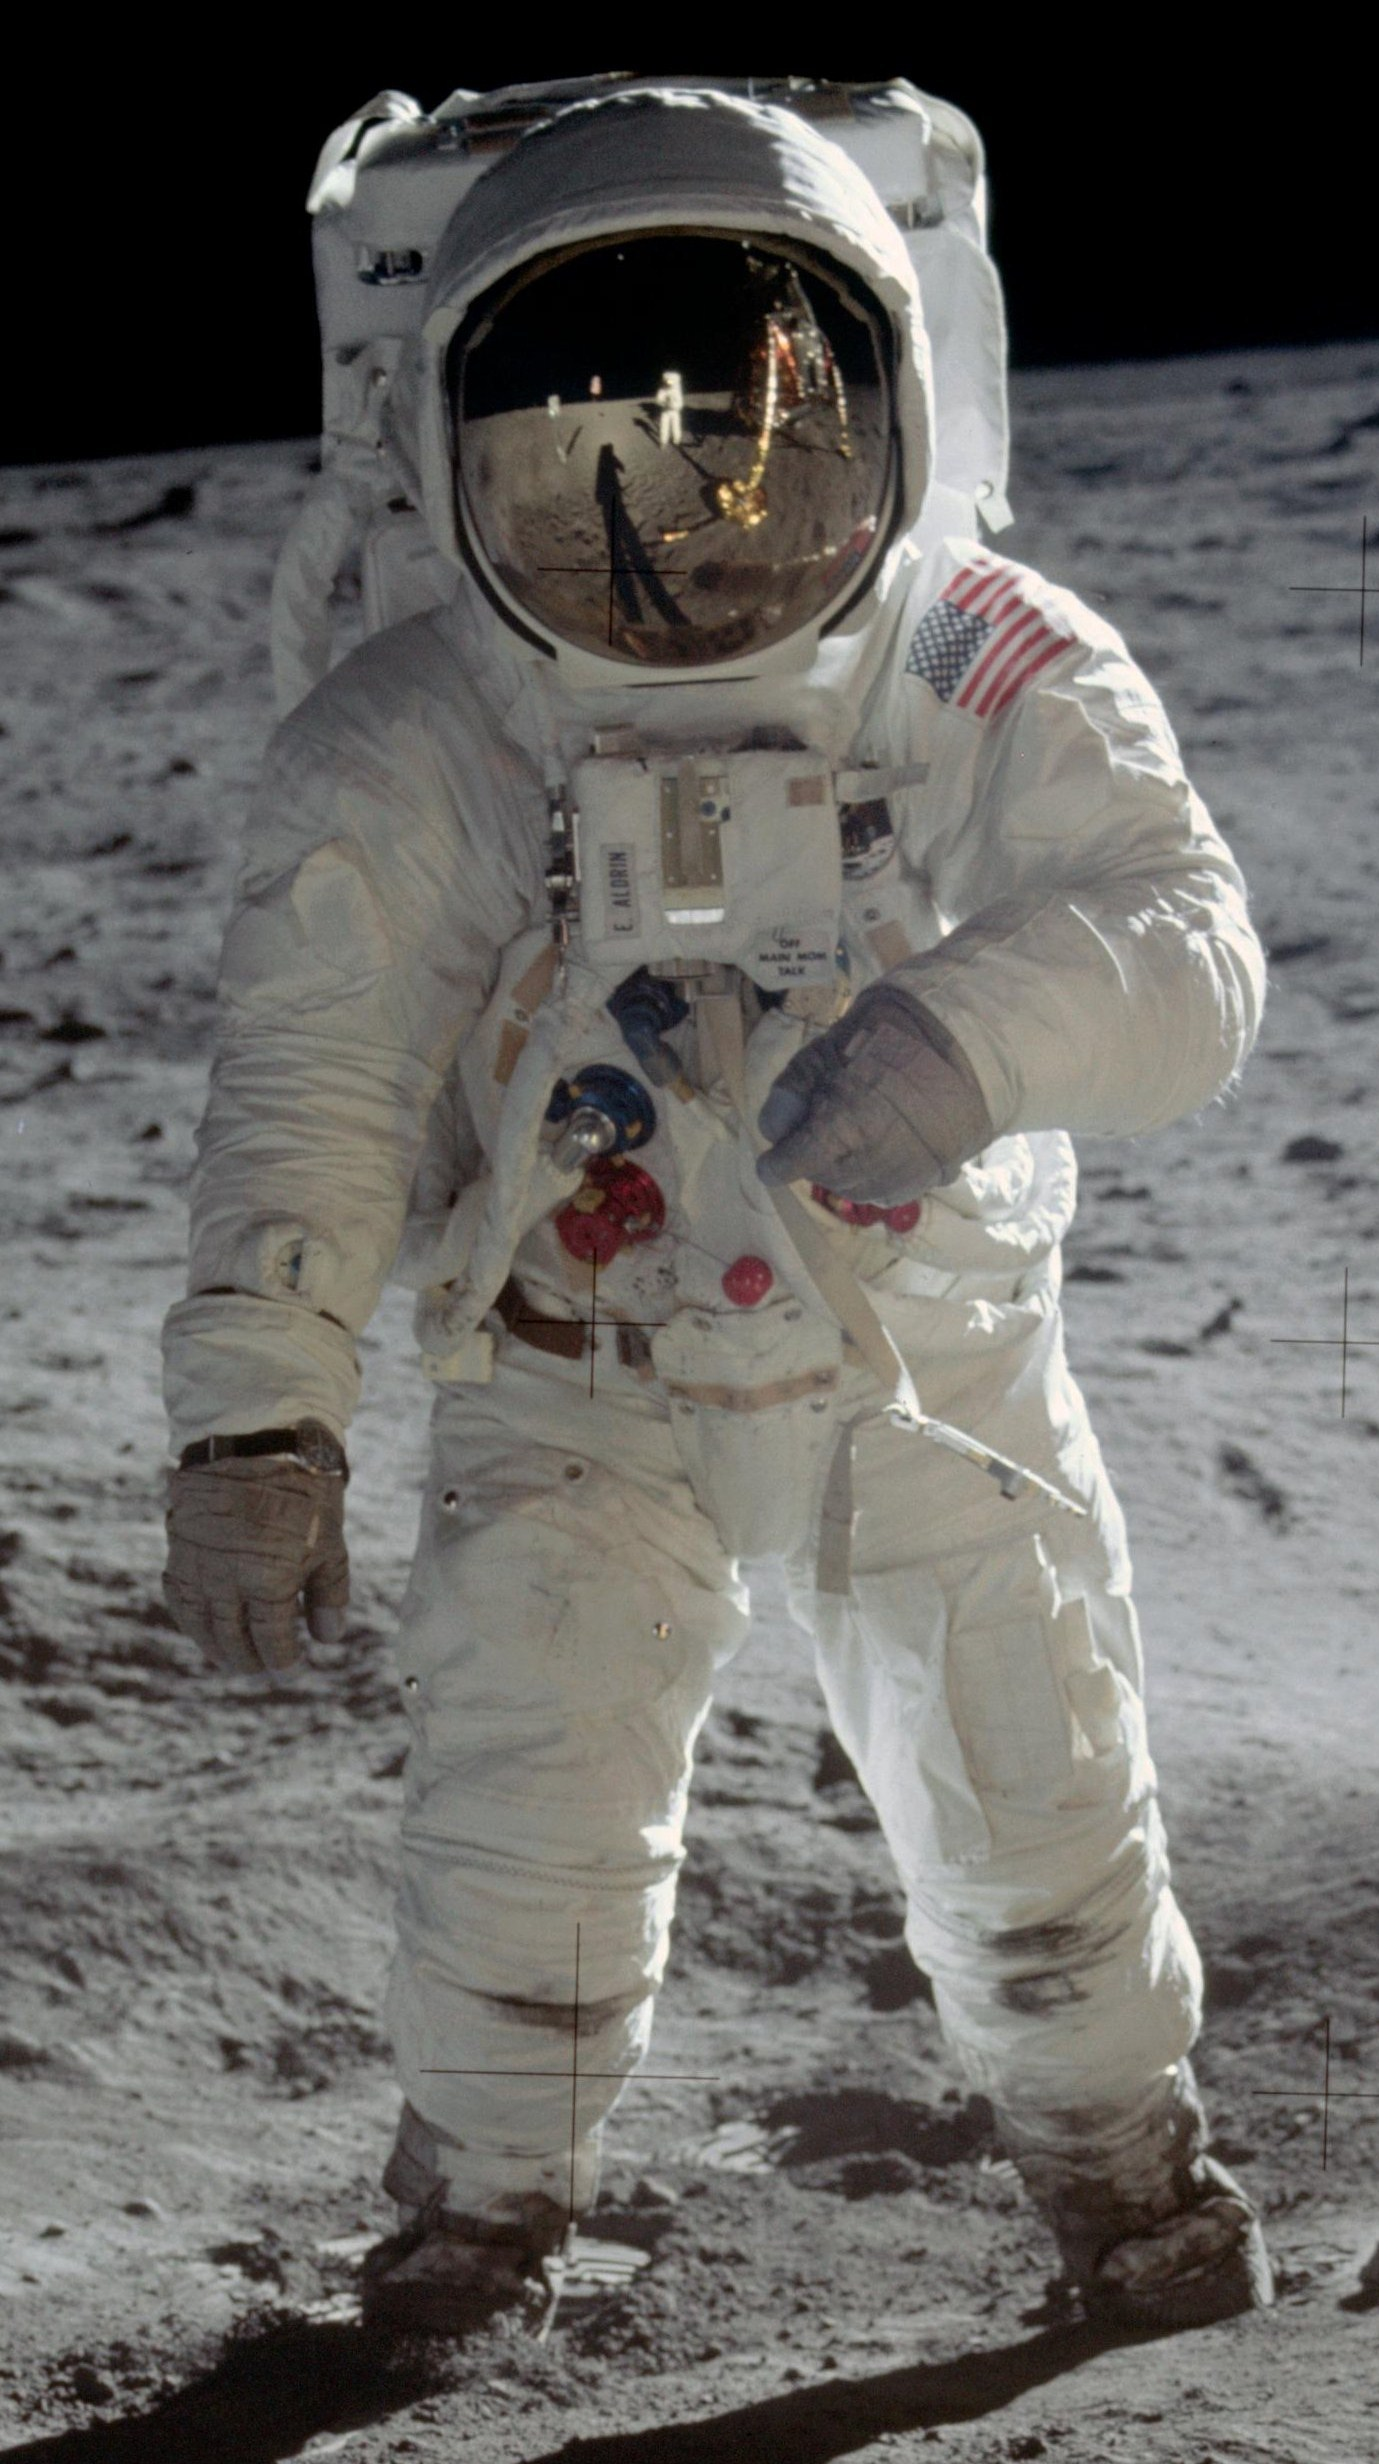 Buzz_Aldrin_Apollo_Spacesuit.jpg